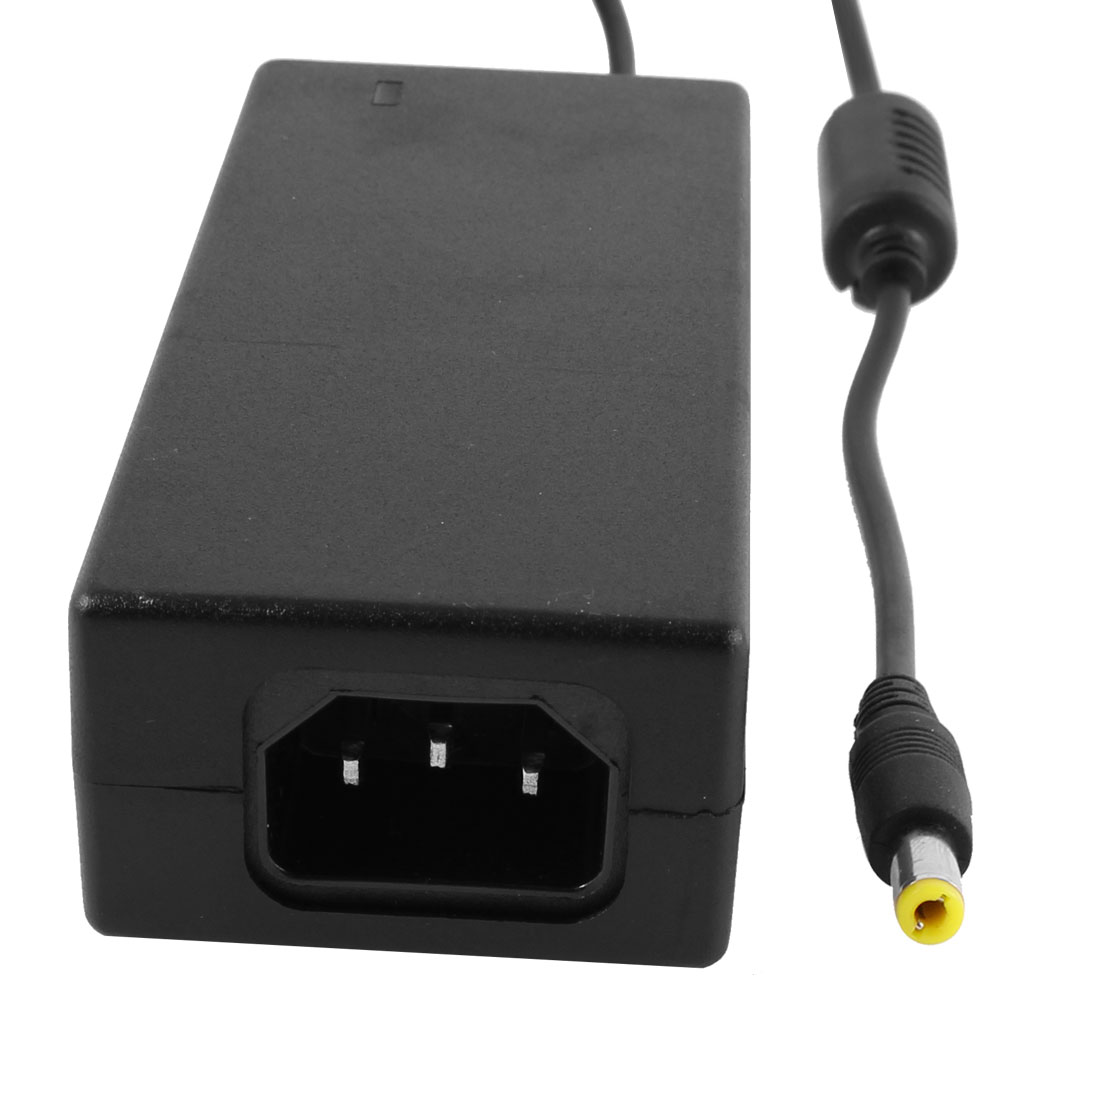 12V 3A AC/DC Adapter Power Supply Cord Charger 5.5x2.1mm Plug IEC320 C14 Socket